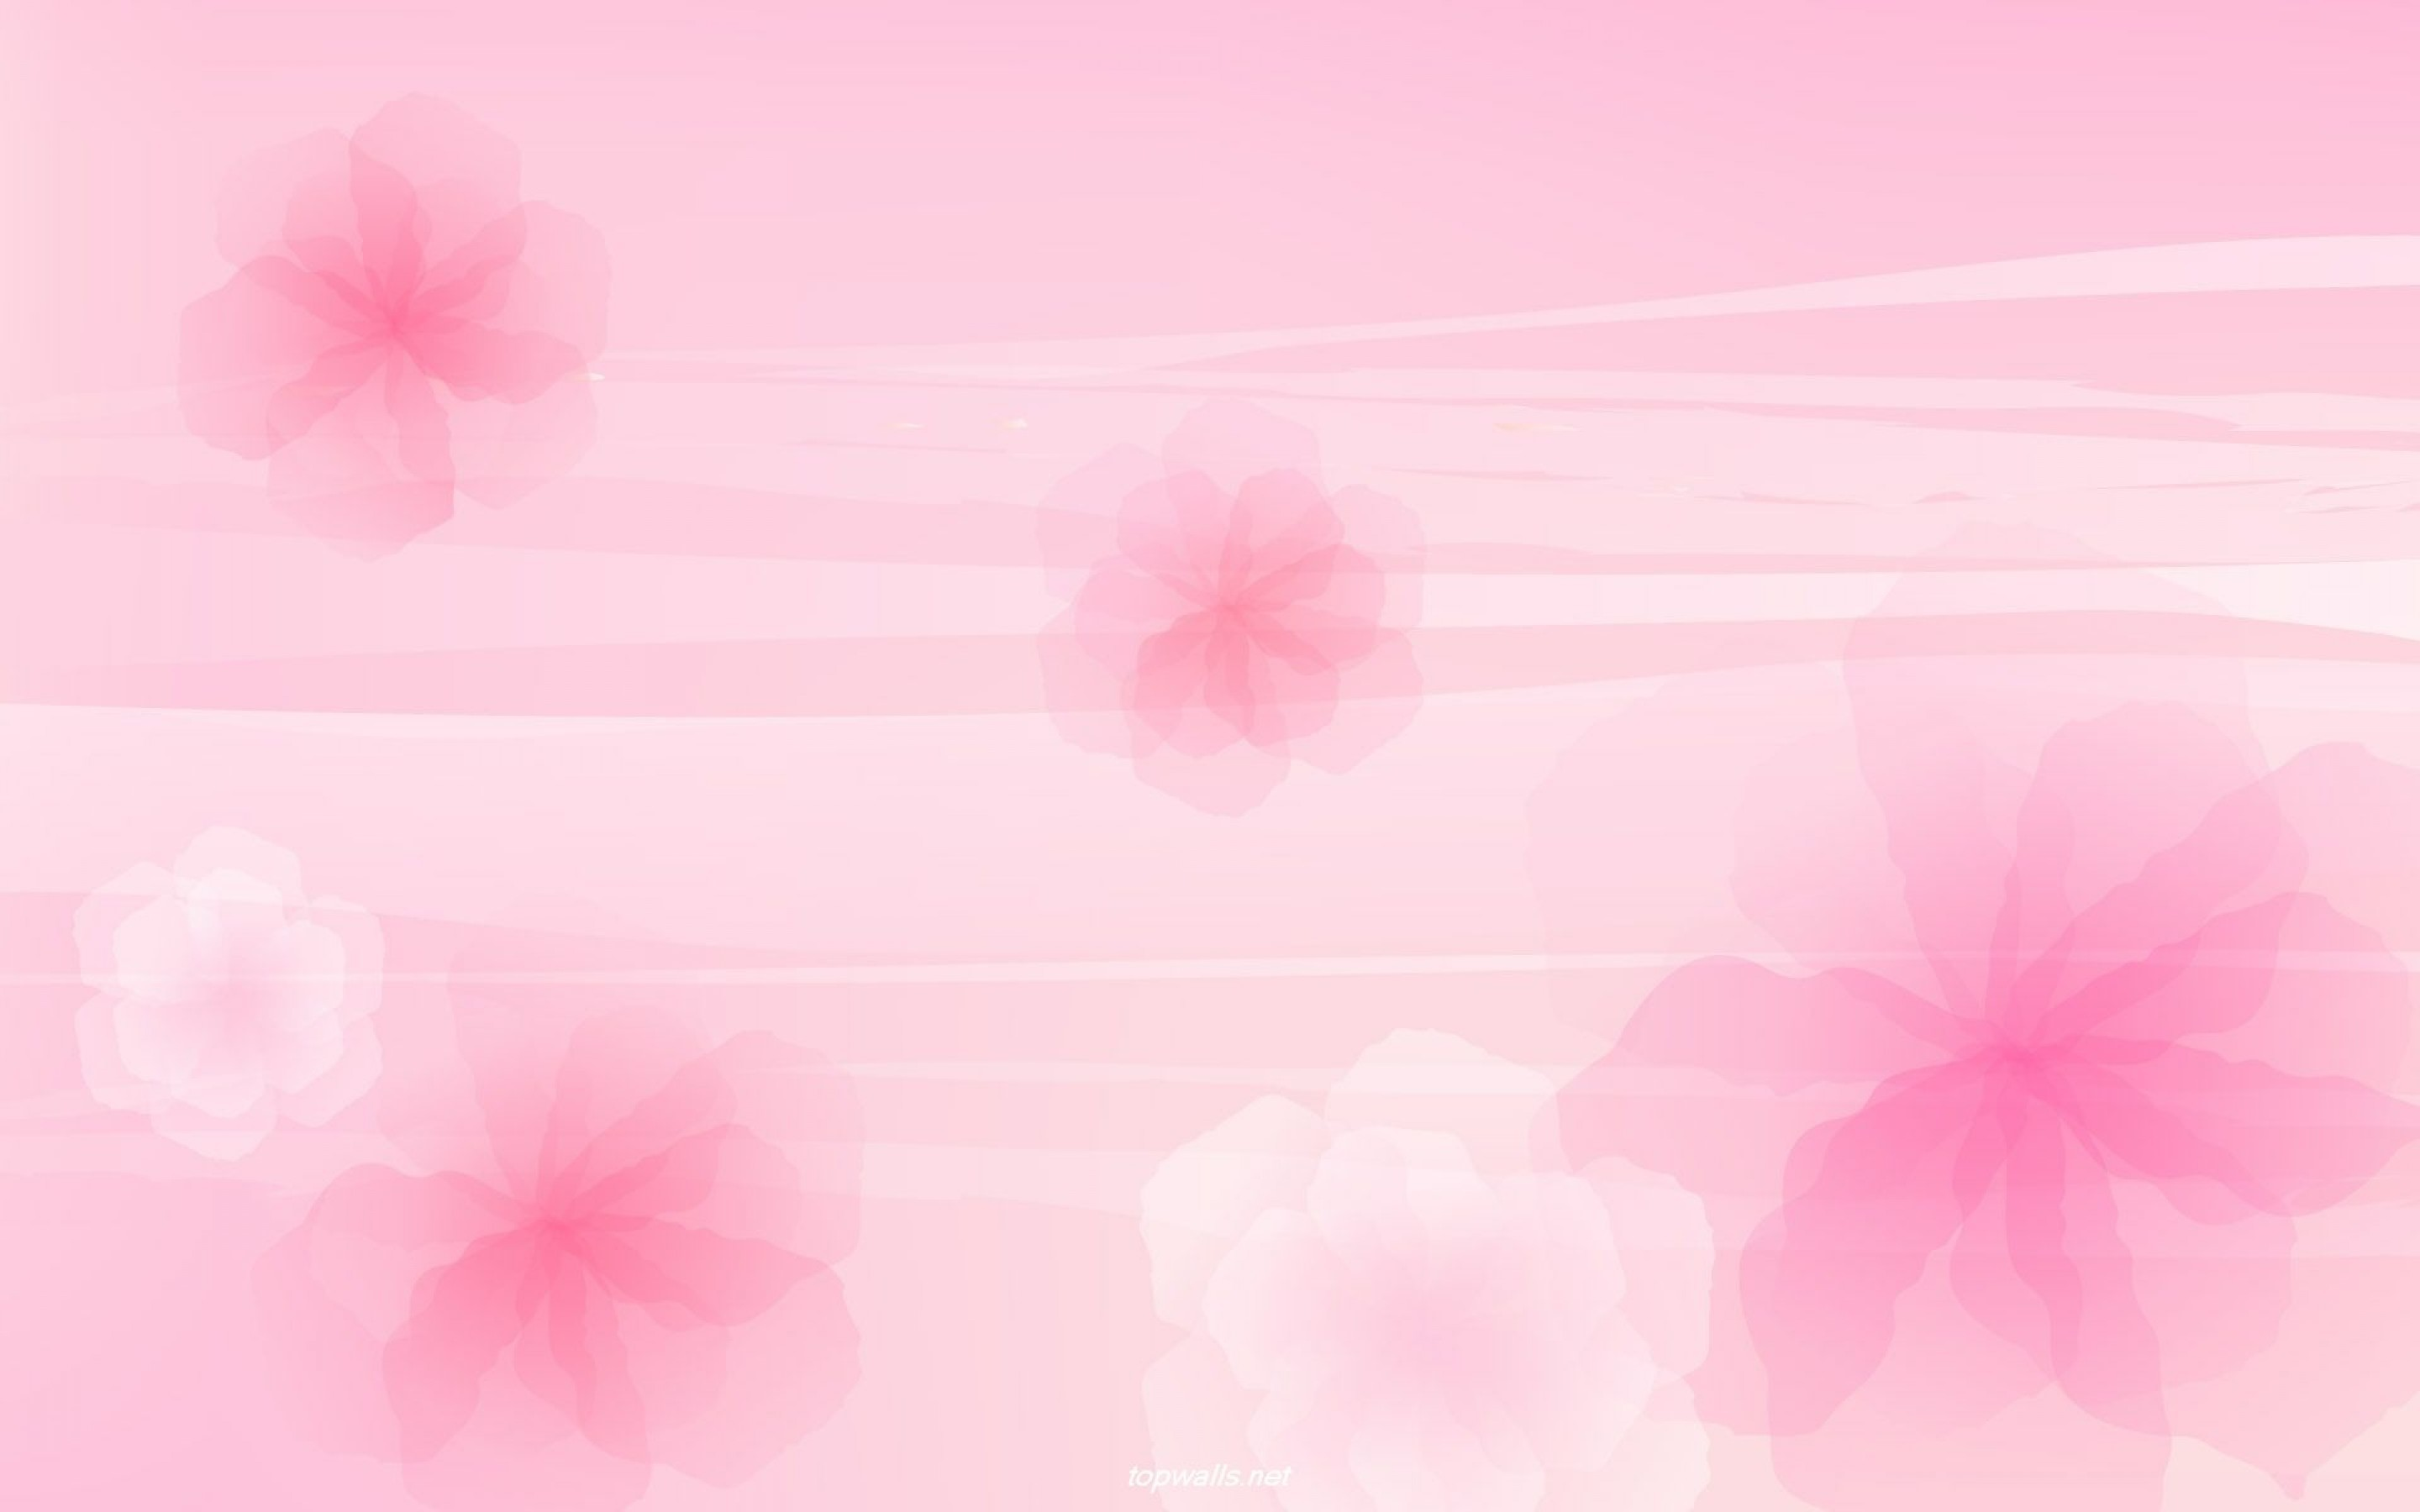 Boy Girl Wallpapers Desktop Backgrounds For Baby Pictures 183 ① Wallpapertag